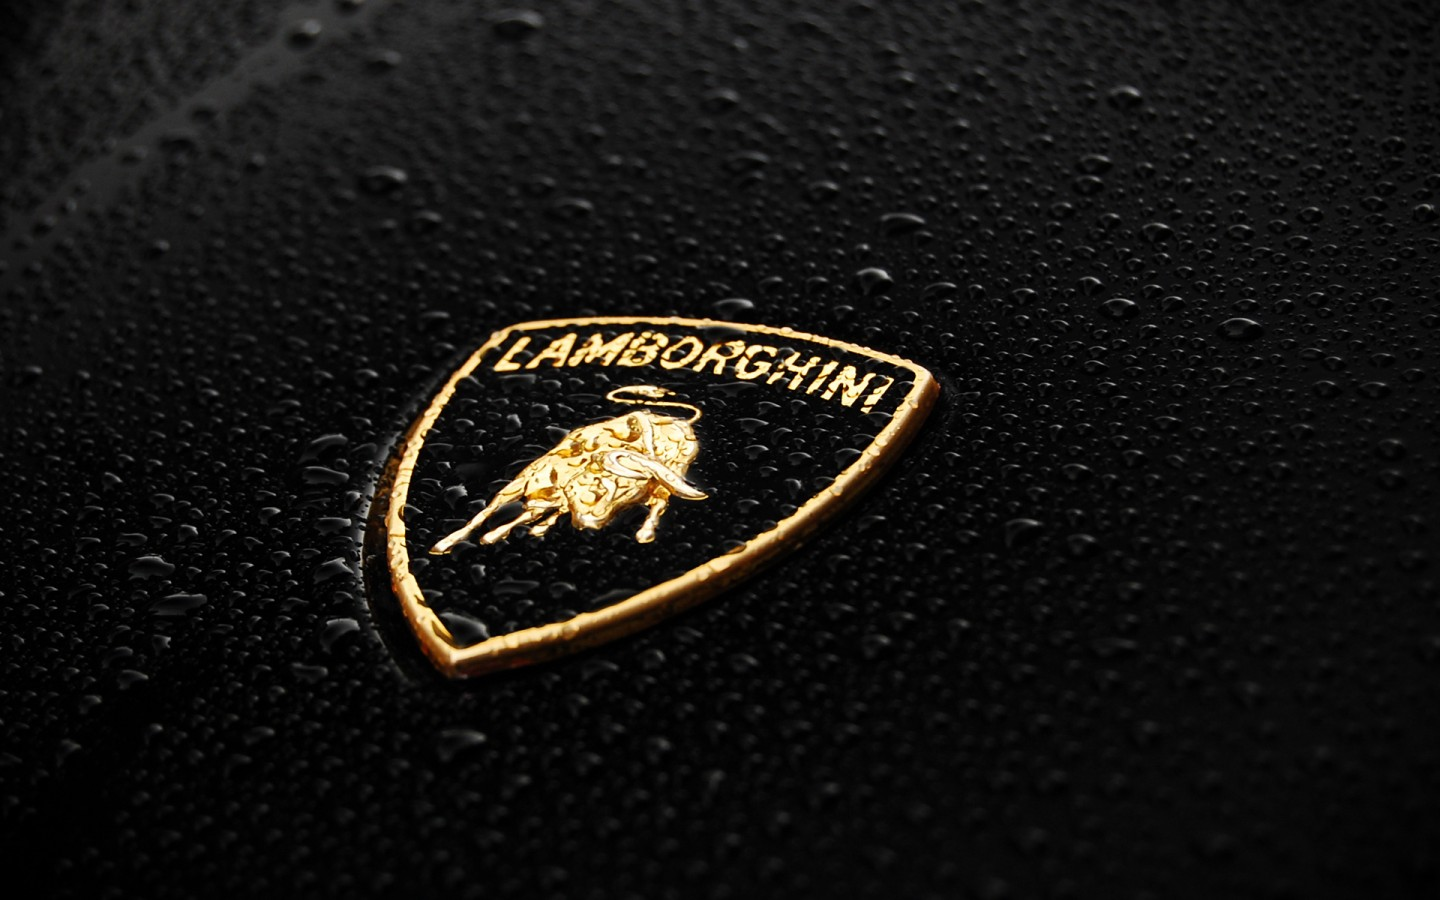 Lamborghini Logo X on mini car logo